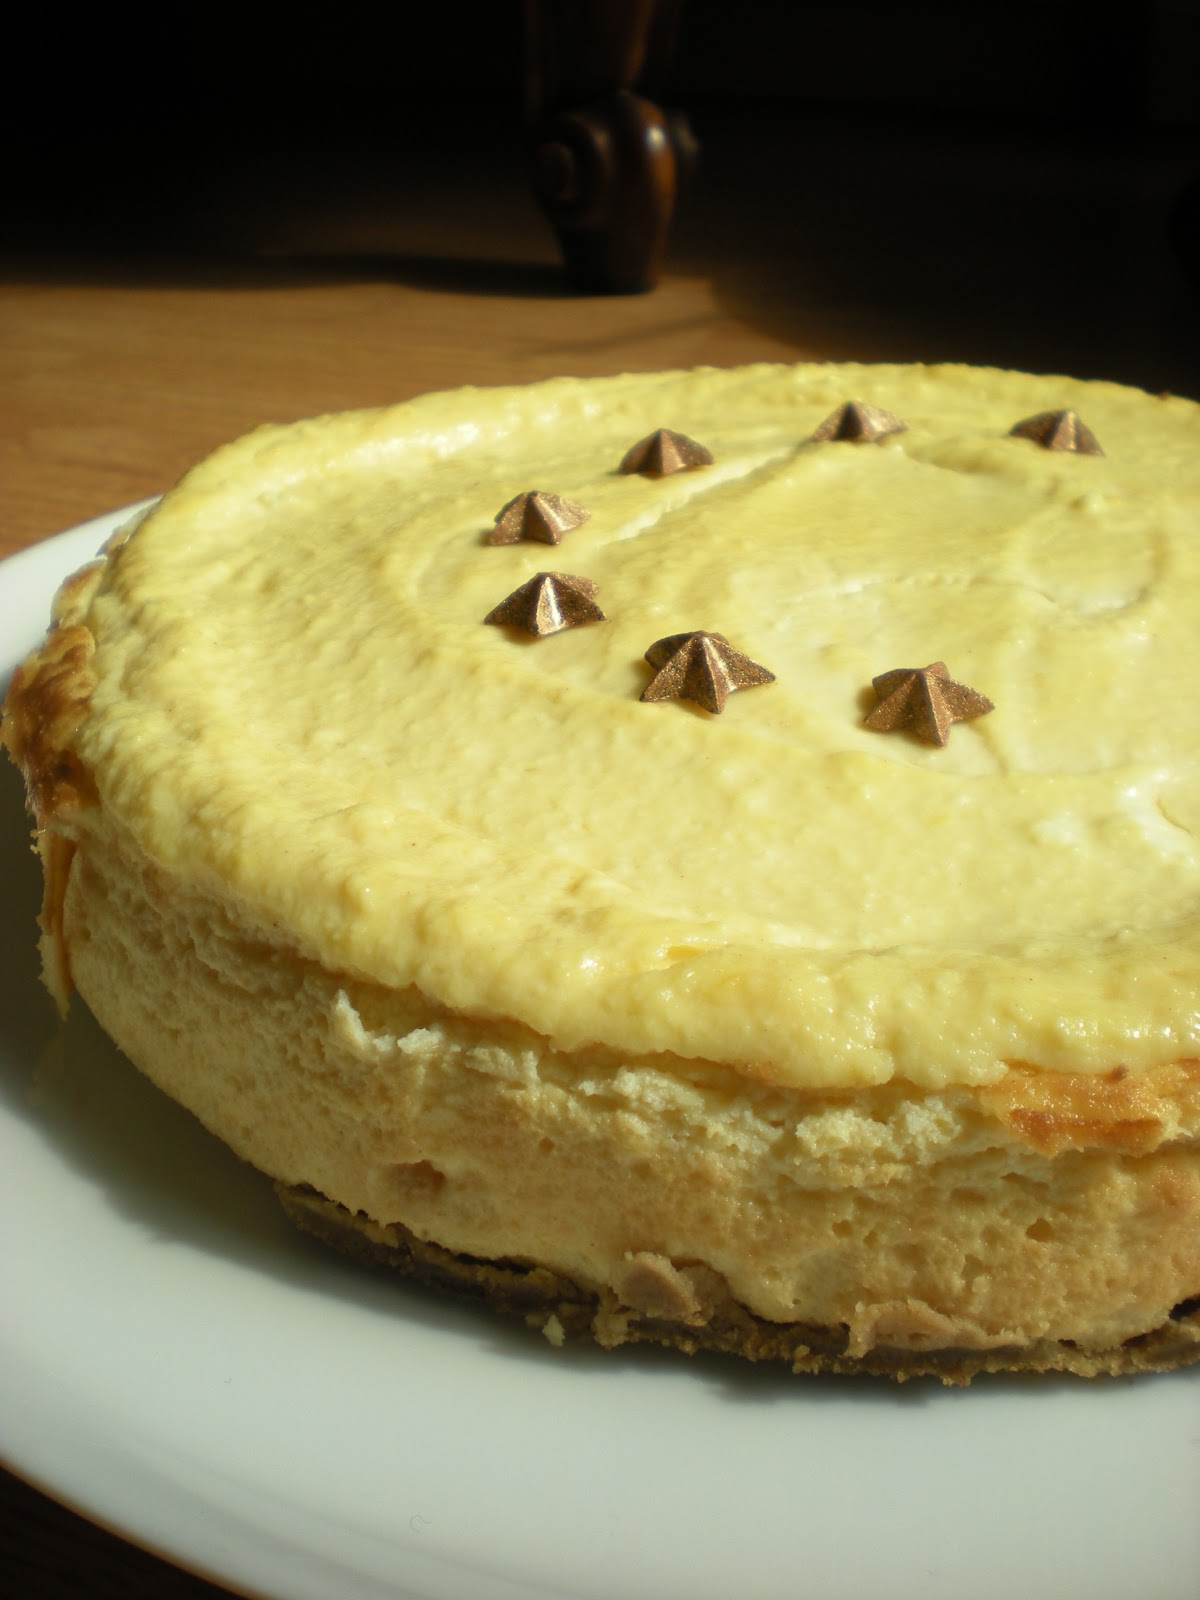 Bilingual Butter: Lemon Ricotta Cheesecake